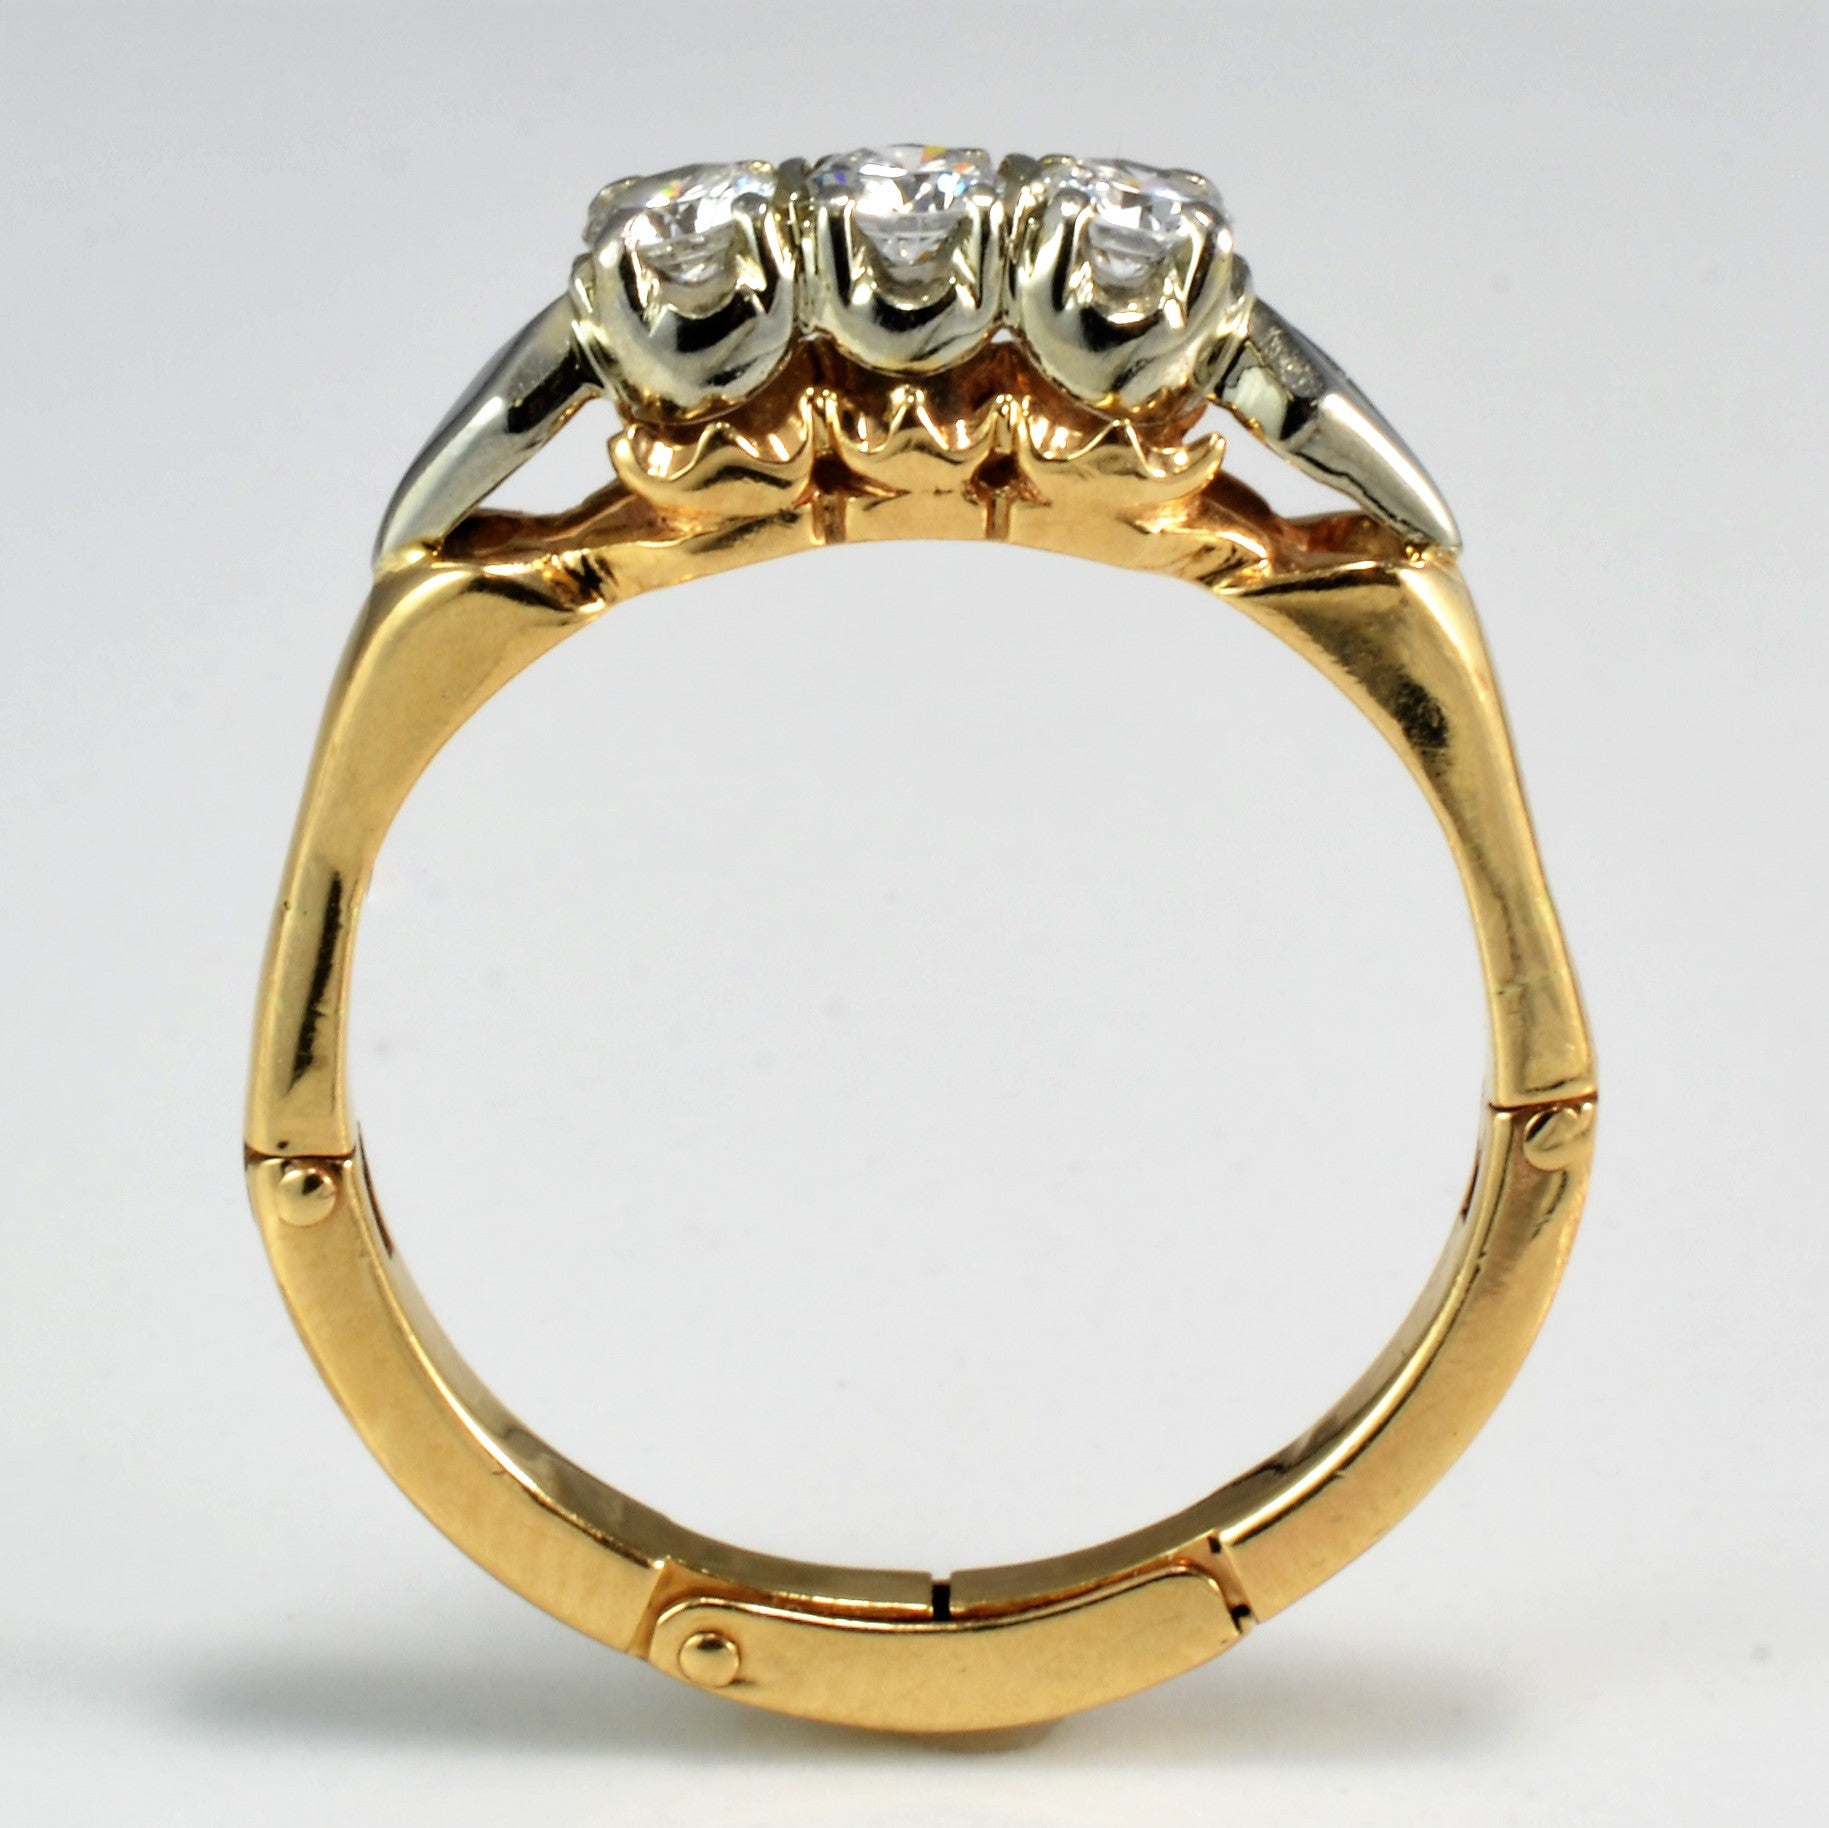 Retro Diamond Ring With Arthritic Shank | 0.33 ctw, SZ 8.25 |